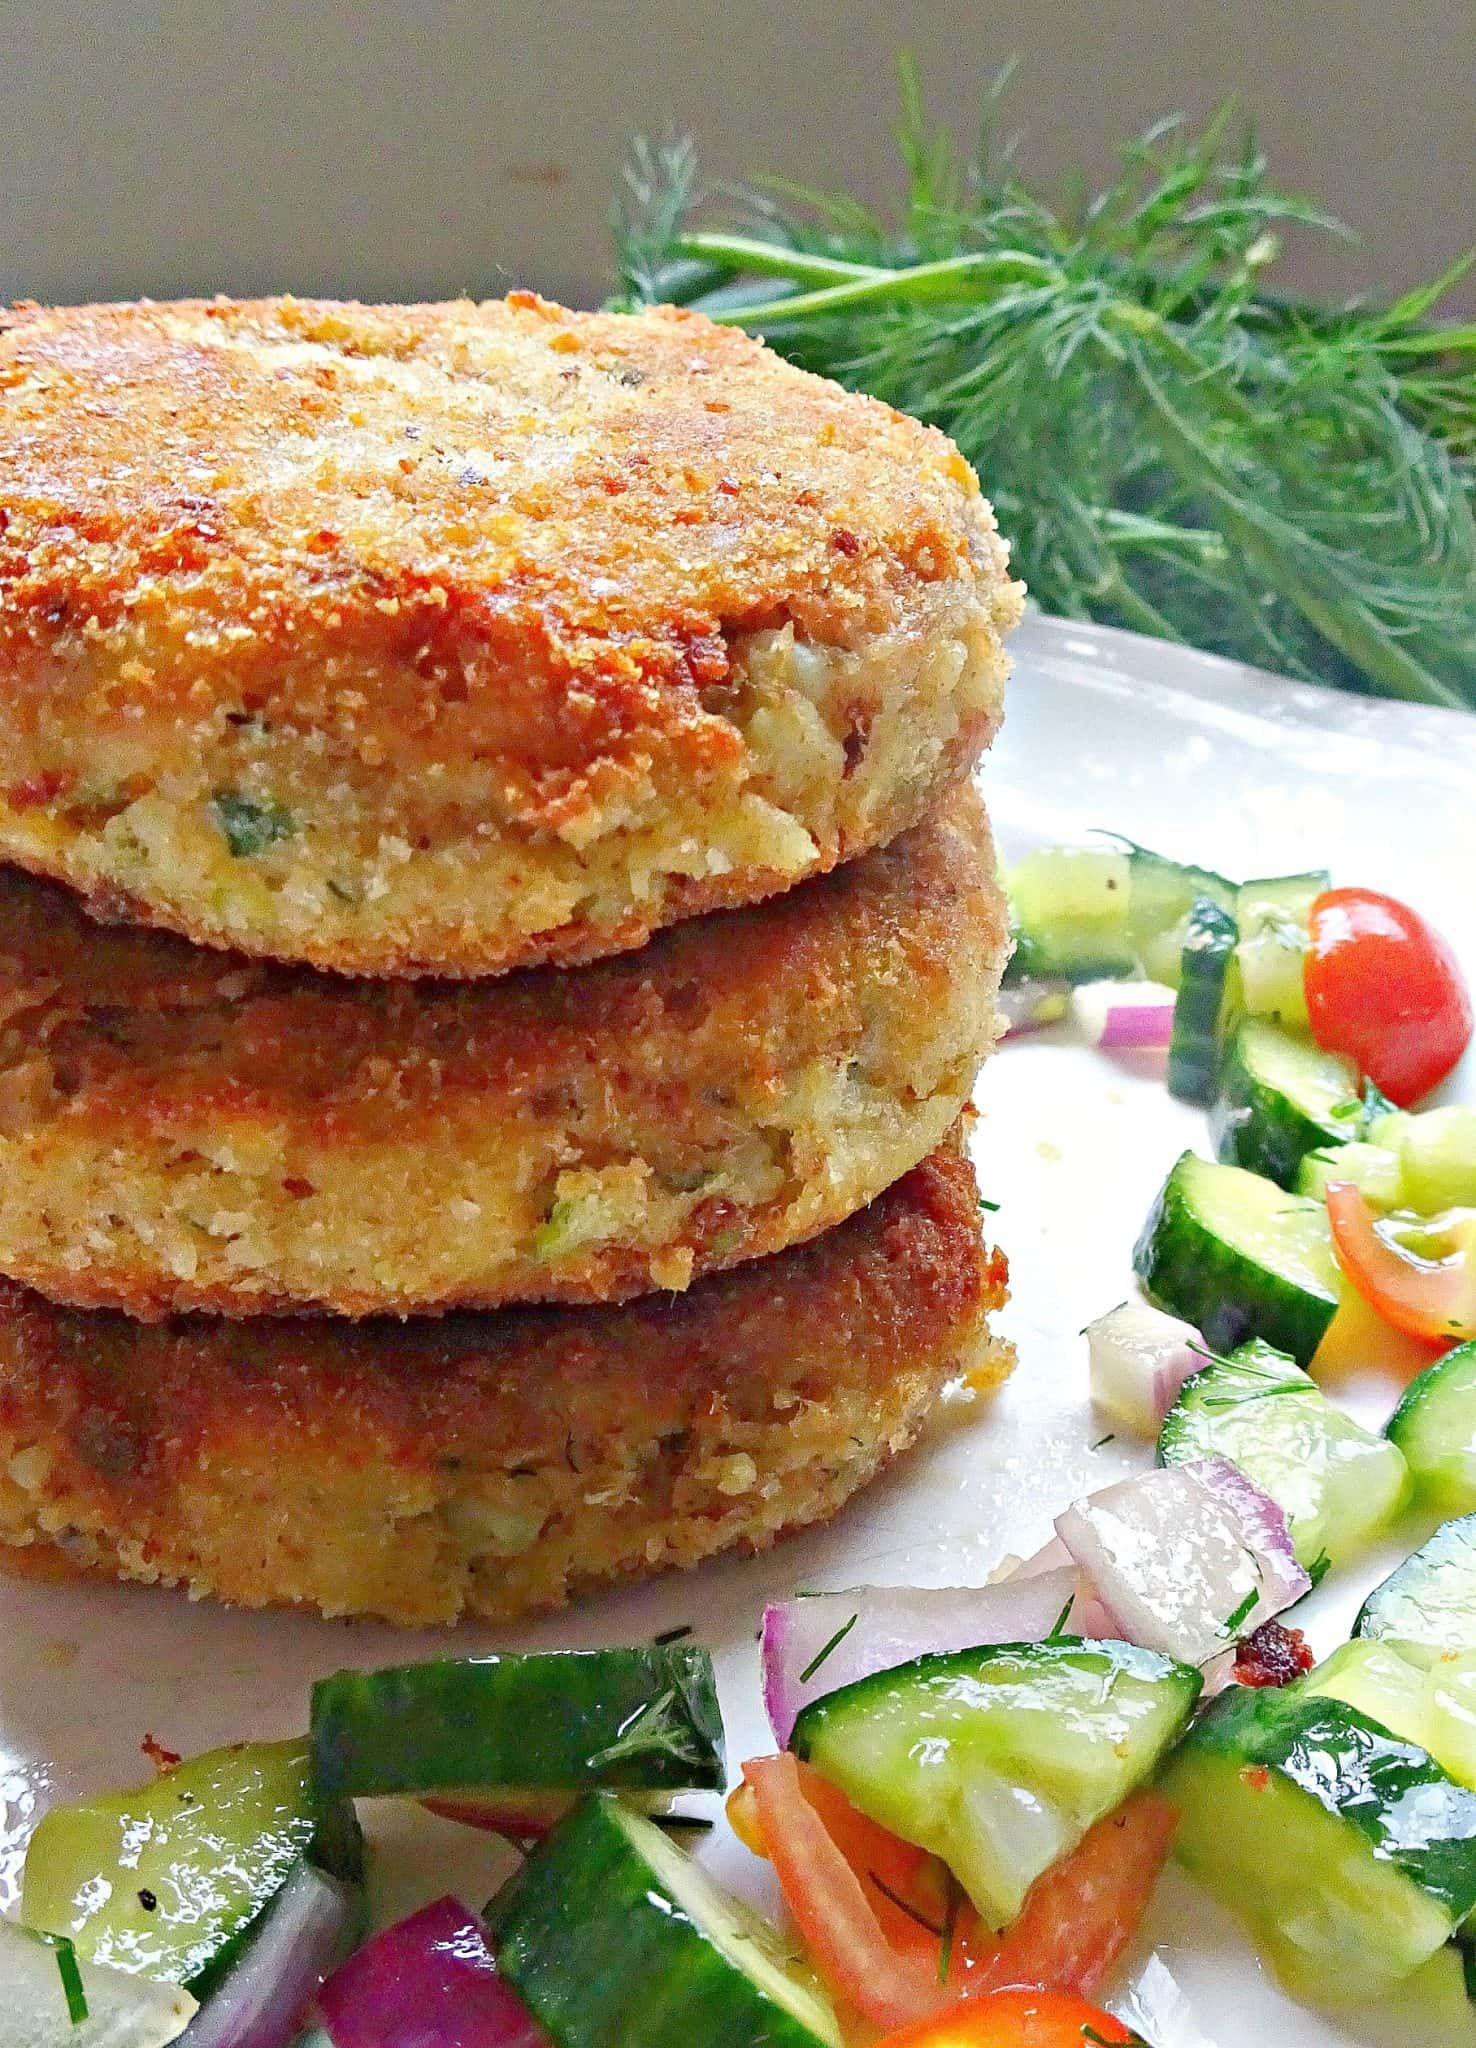 Crispy On The Outside And Smooth On The Inside These Potato Tuna Patties Are The Perfect Way To Use Up Some Tuna Fish Recipes Canned Tuna Recipes Fish Recipes